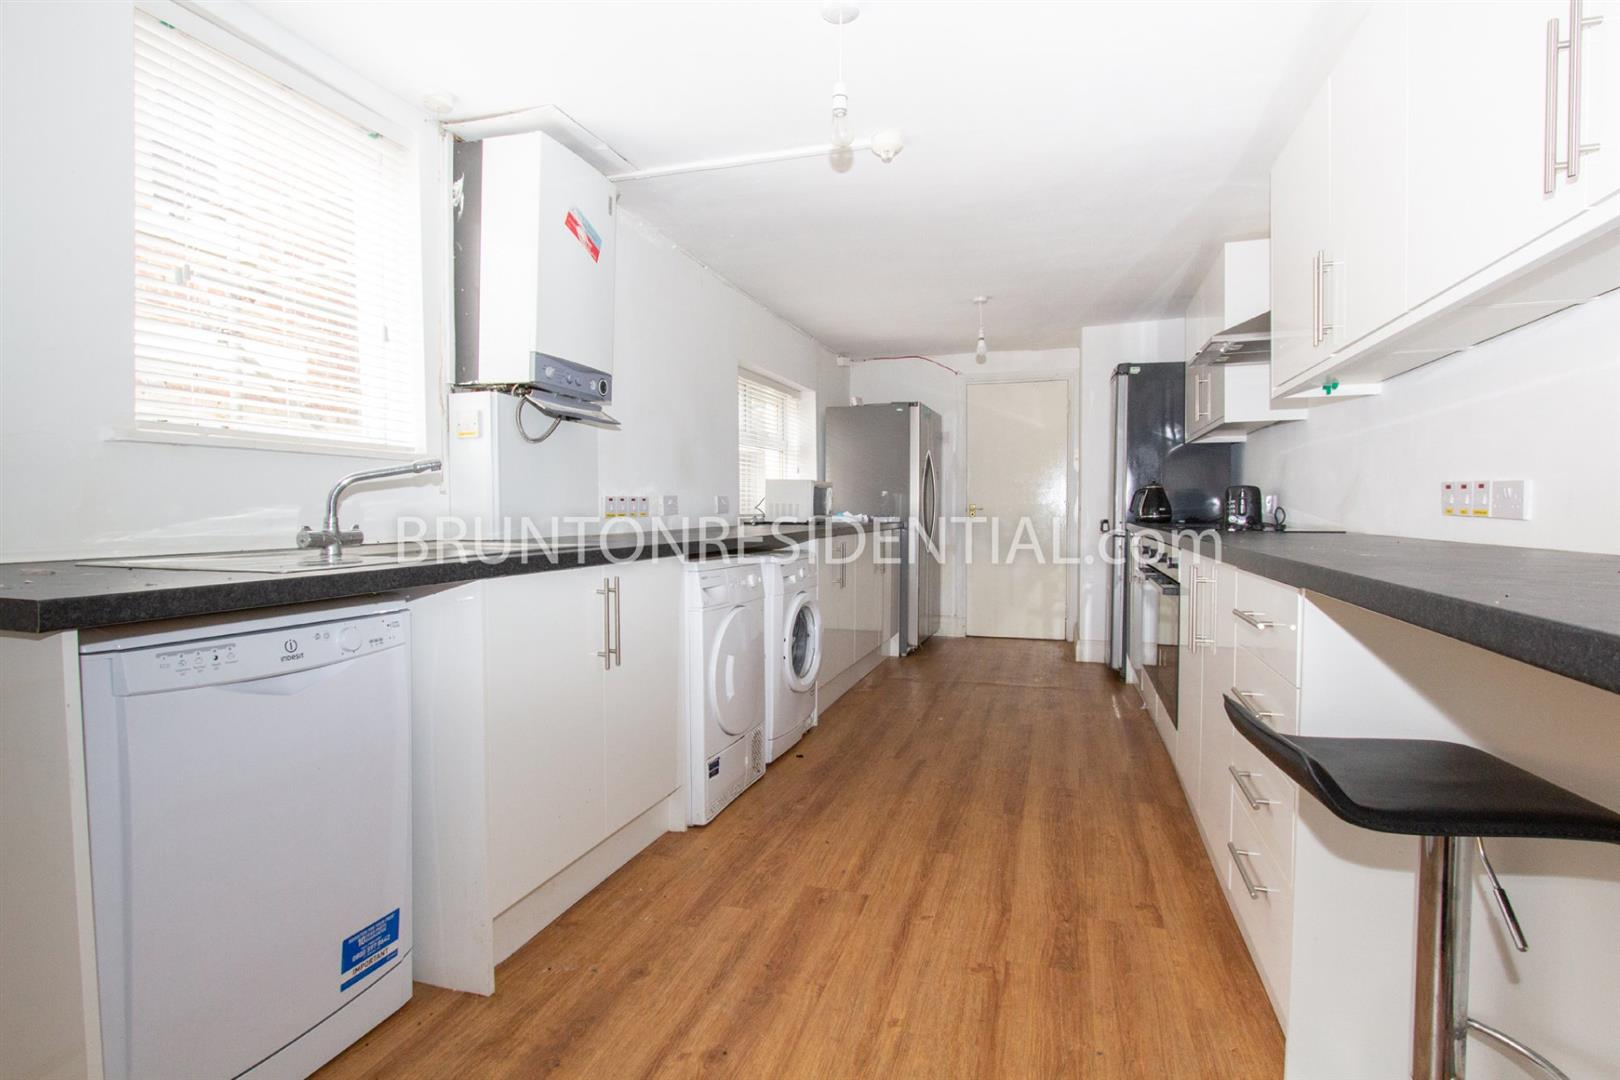 7 bed terraced house to rent in Jesmond, NE2 2NB, NE2